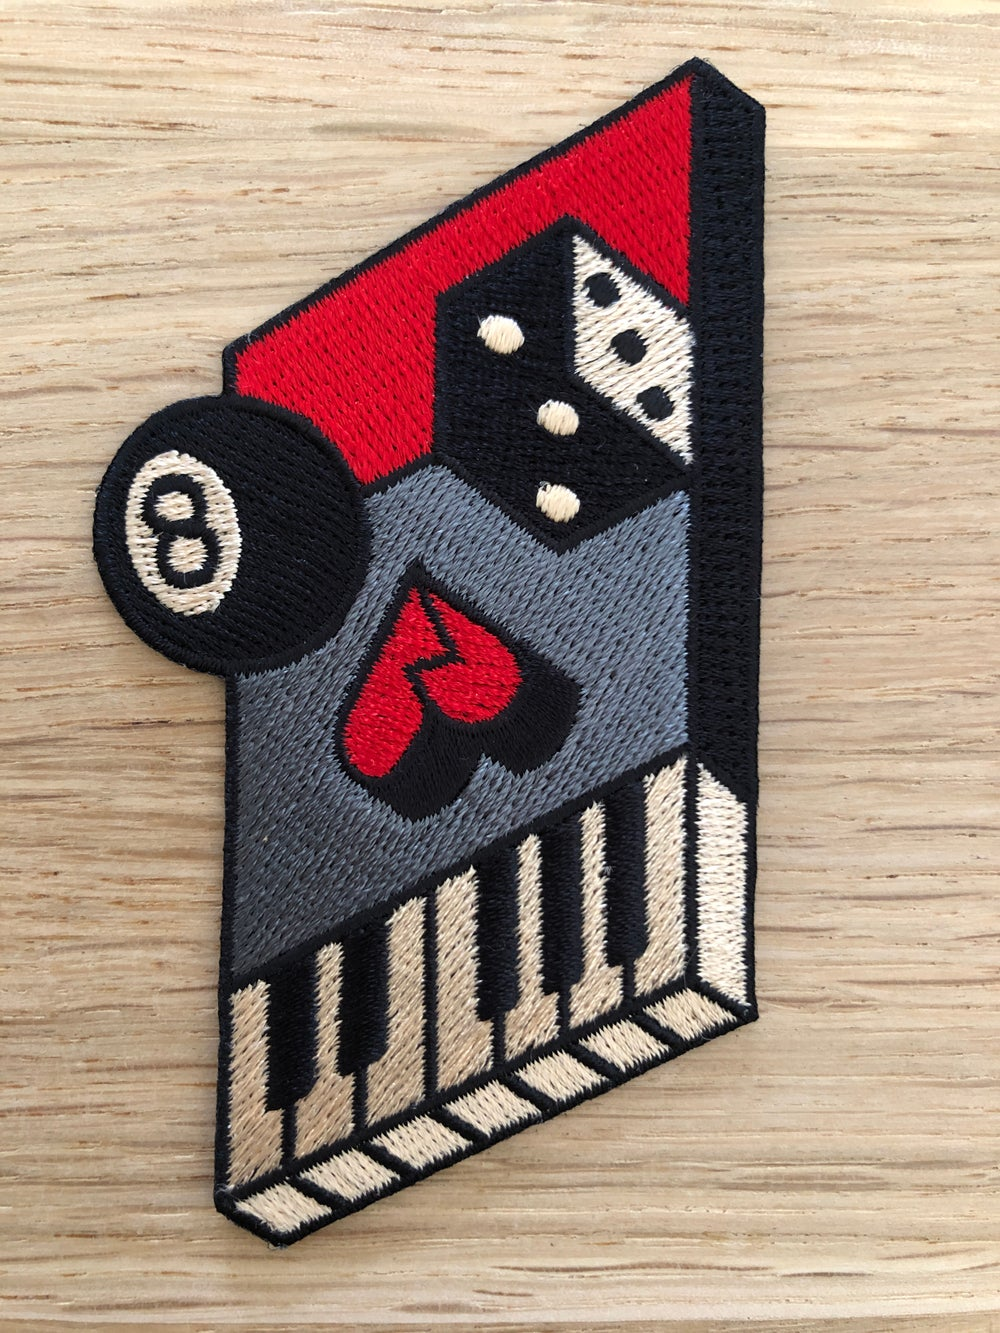 Image of Creative block - Patch